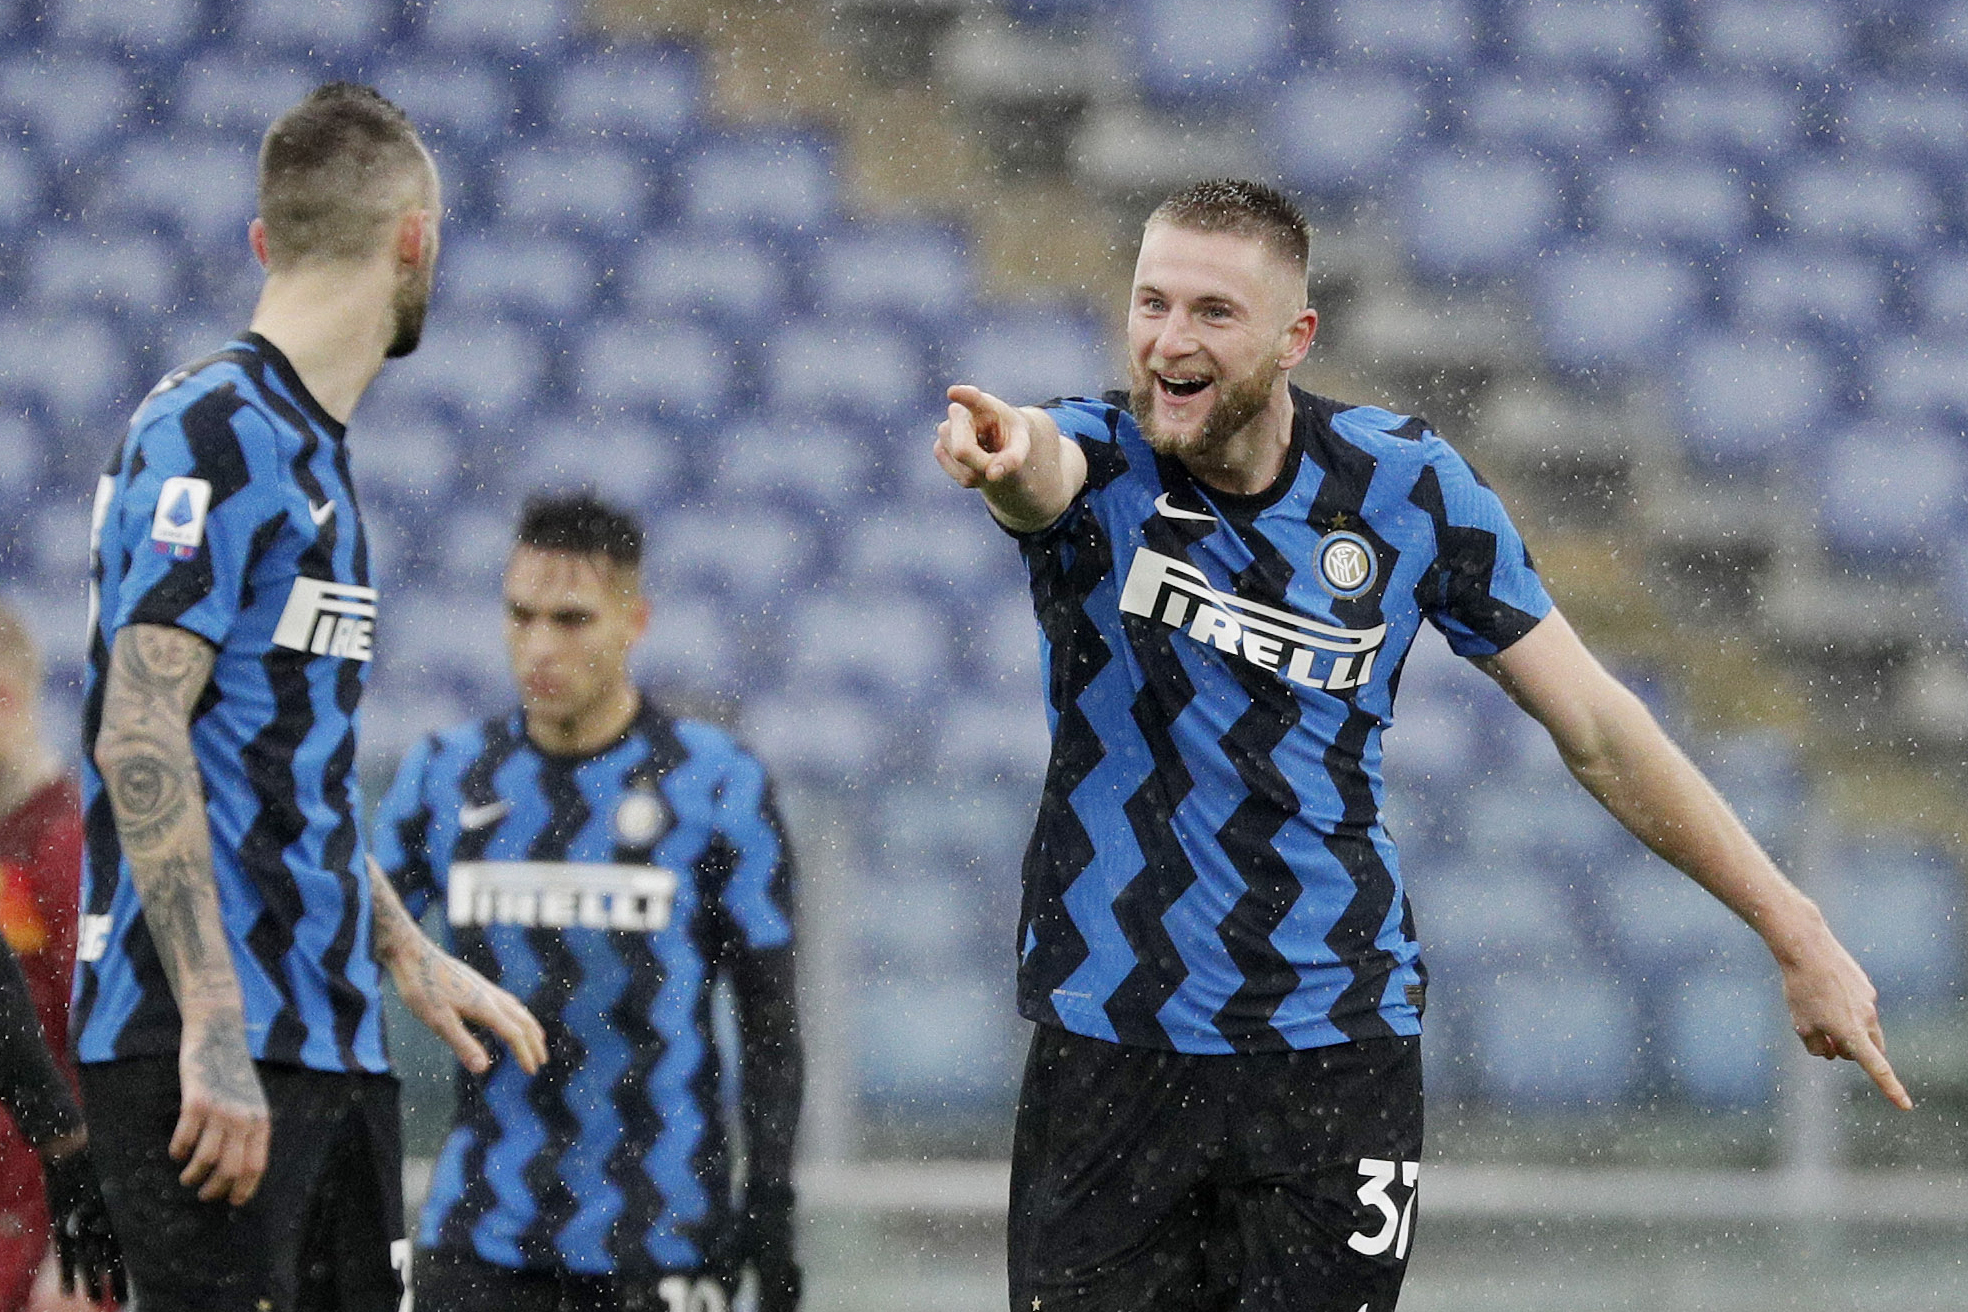 Udinese inter betting preview nfl online betting for ufc fights